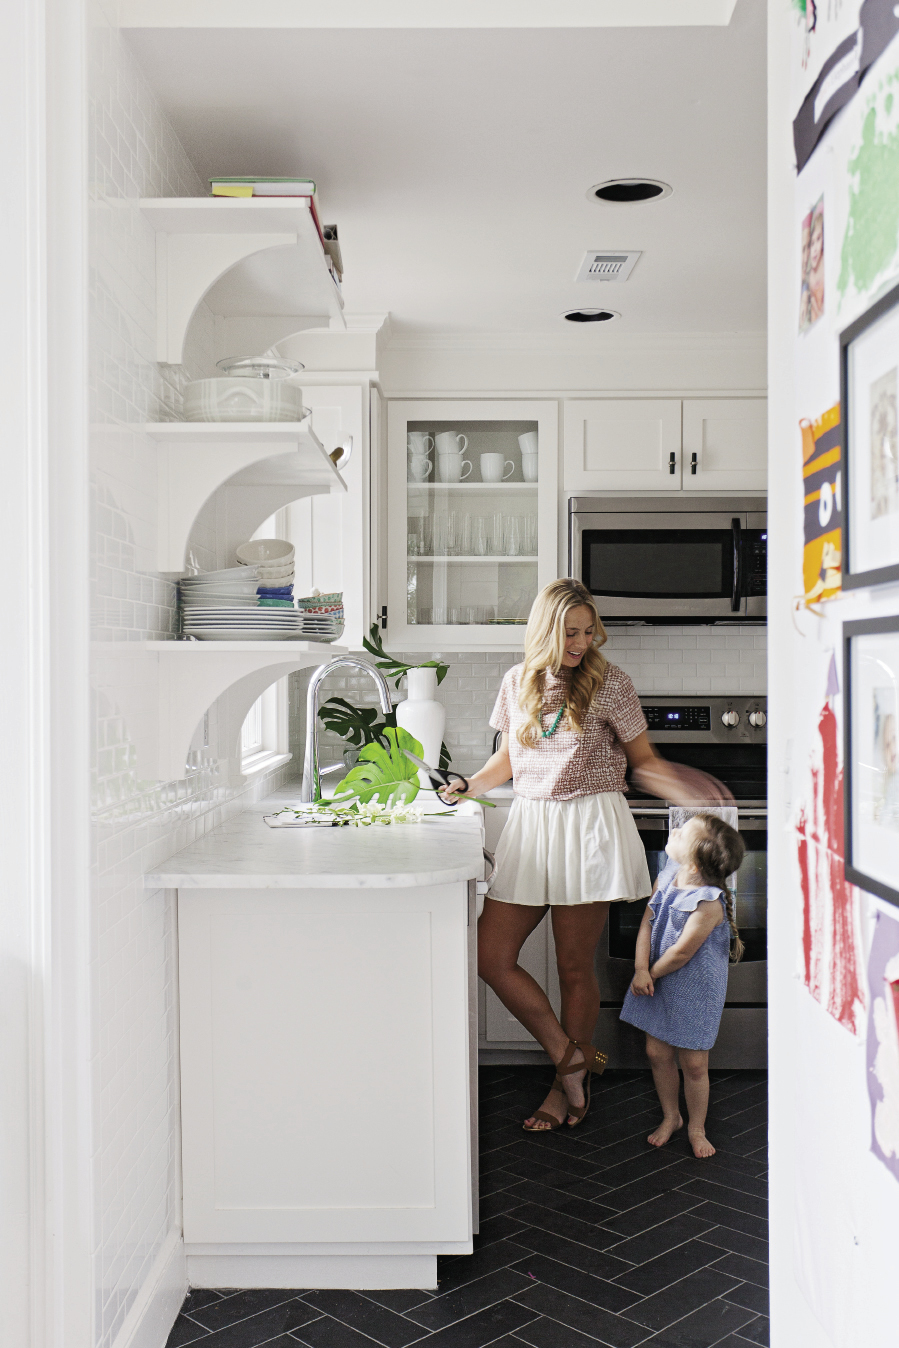 Small Serving The tiny kitchen lives large with new marble counters, a classic coat of white, and glass-front cabinets. Floor tiles in a herringbone pattern add fun contrast.